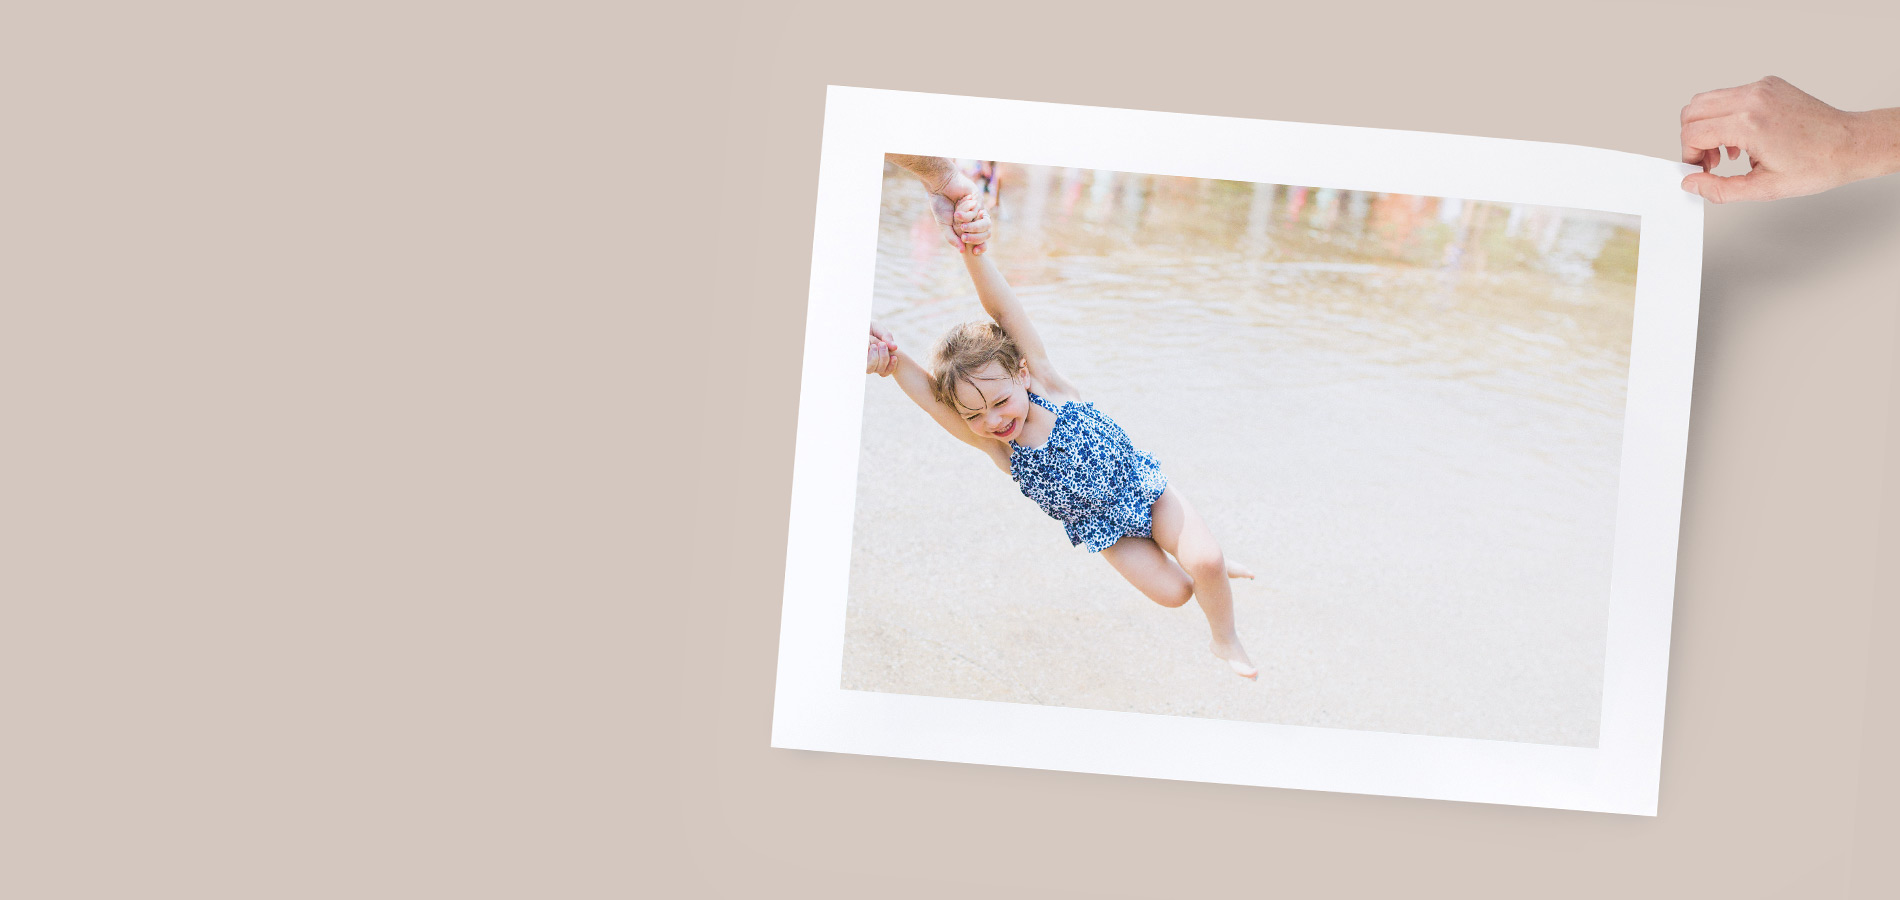 Enlarged photo of little girl laughing